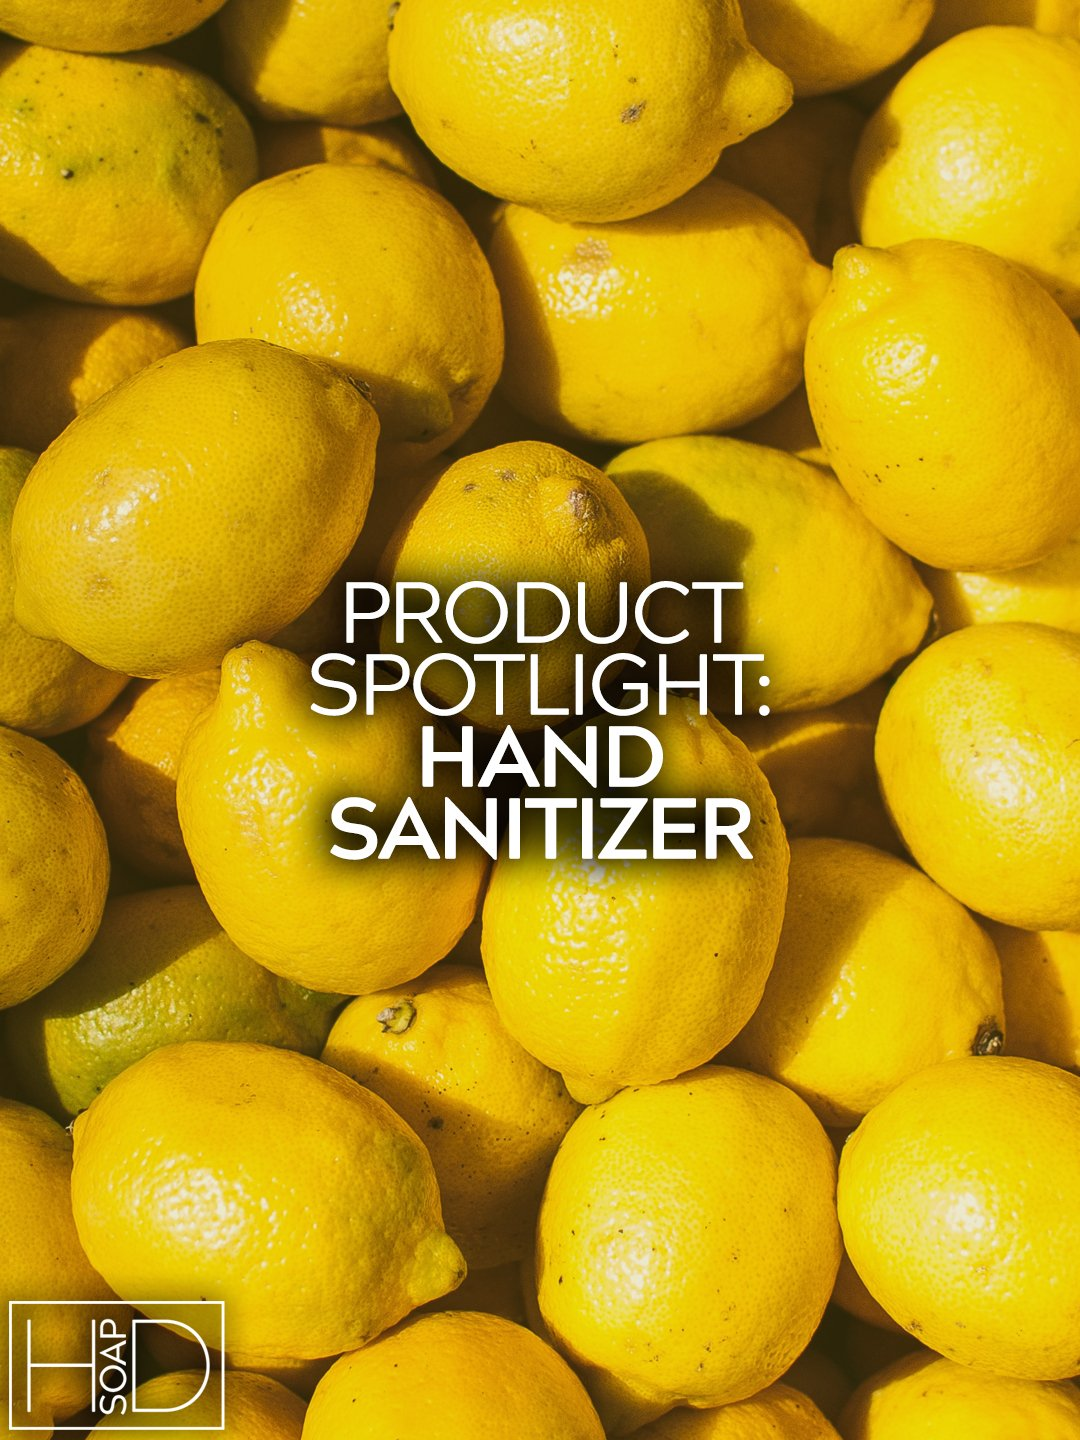 HD Soap | Hand Sanitizer